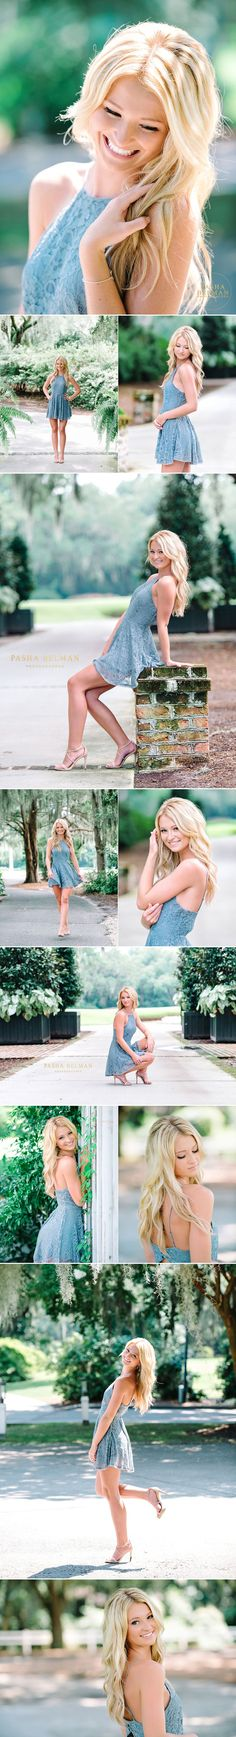 Senior Pictures Senior Photography High School Senior Photographers in Charleston and Myrtle Beach Pasha Belman Photography High School Senior Picture Ideas for Girls by DeeDeeBean Senior Girl Photography, Senior Girl Poses, Girl Senior Pictures, Photography Poses Women, Senior Girls, Portrait Photography, Photography Ideas, Fashion Photography, Senior Session